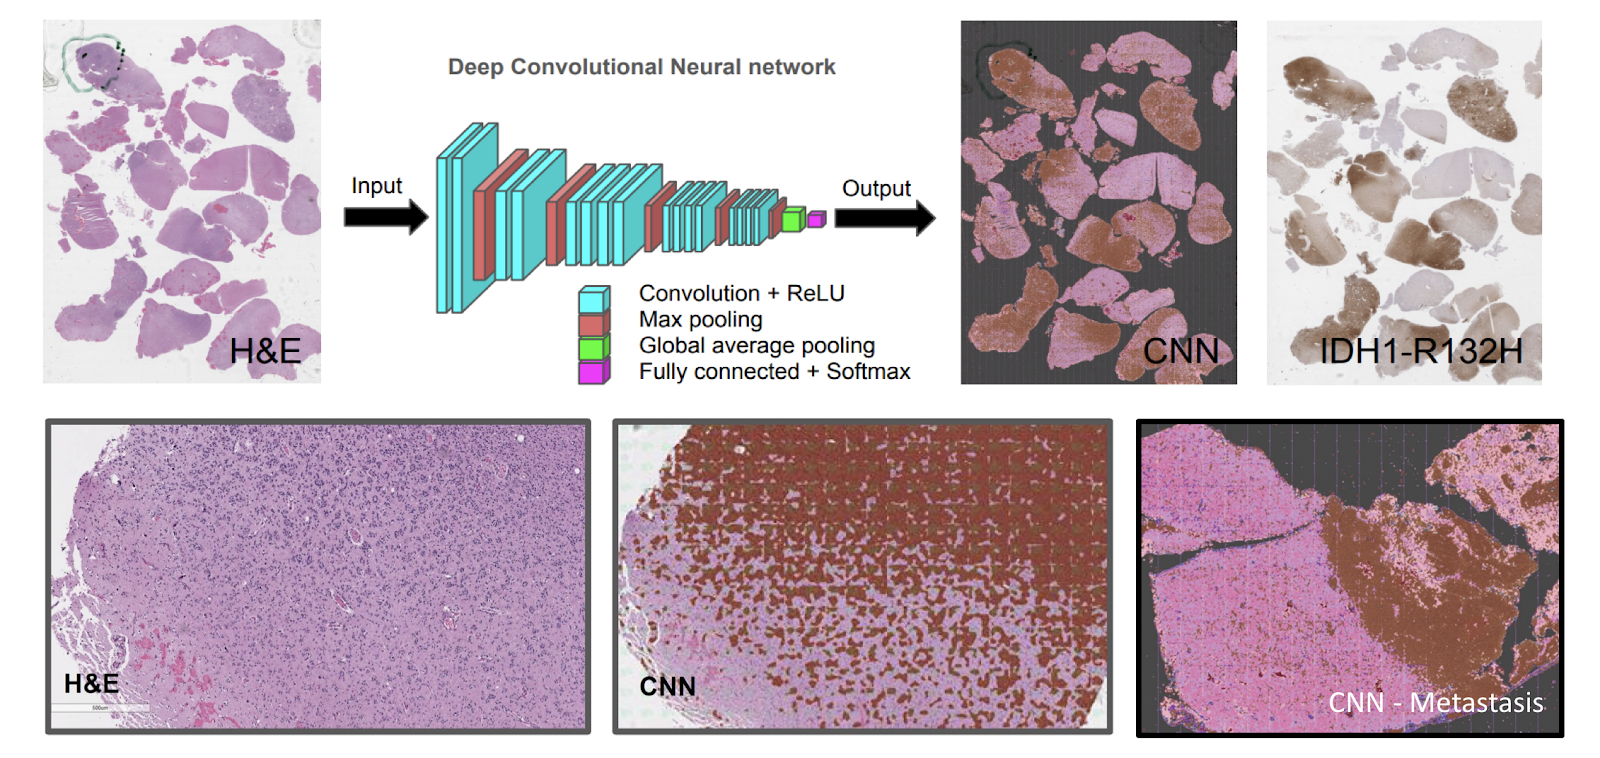 neuropathology blog: Guest Post - Wanted: Your Opinion on